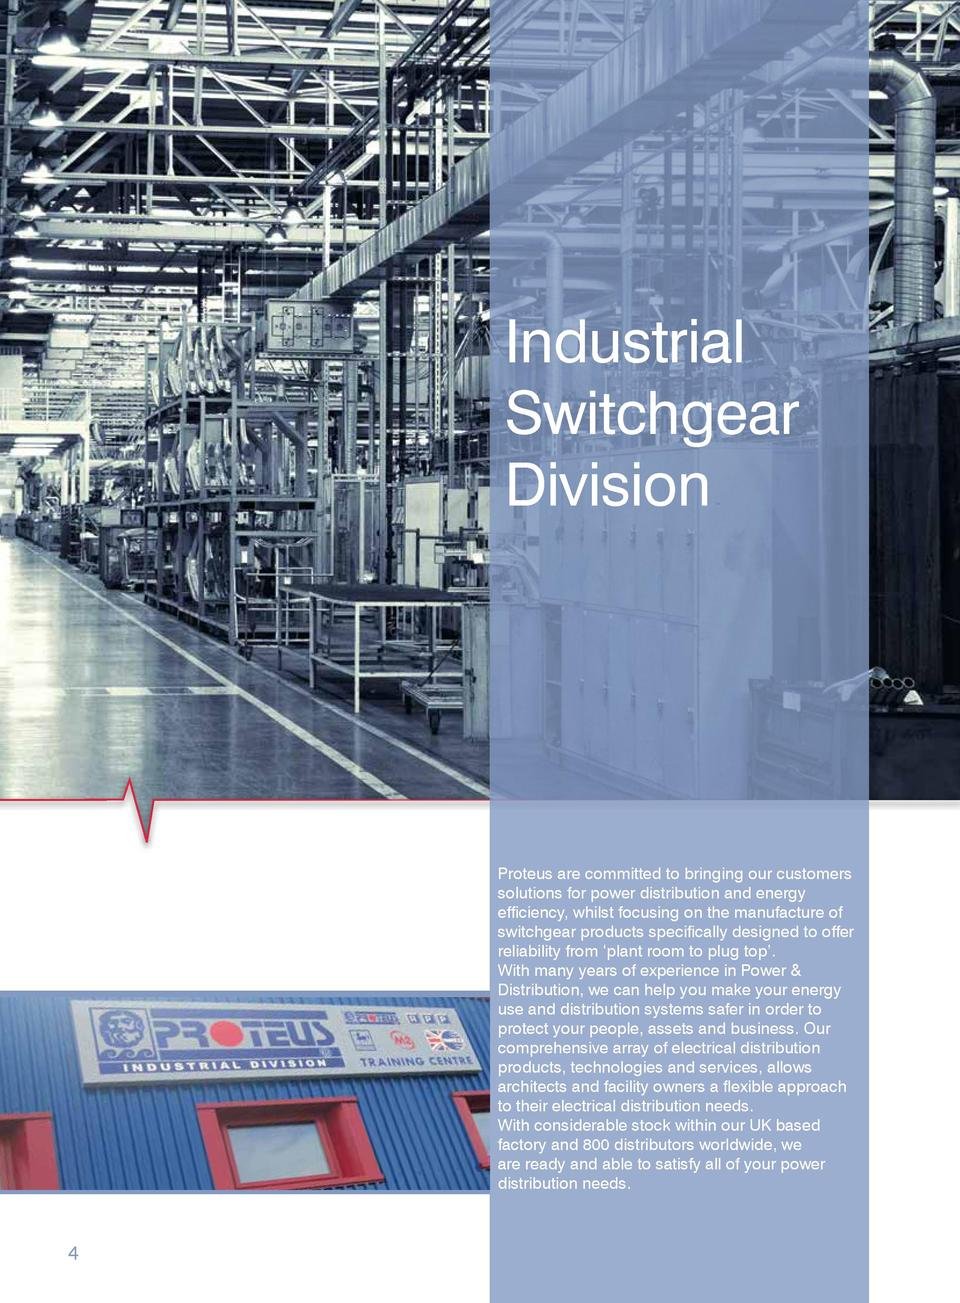 Industrial Switchgear Division  Proteus are committed to bringing our customers solutions for power distribution and energ...